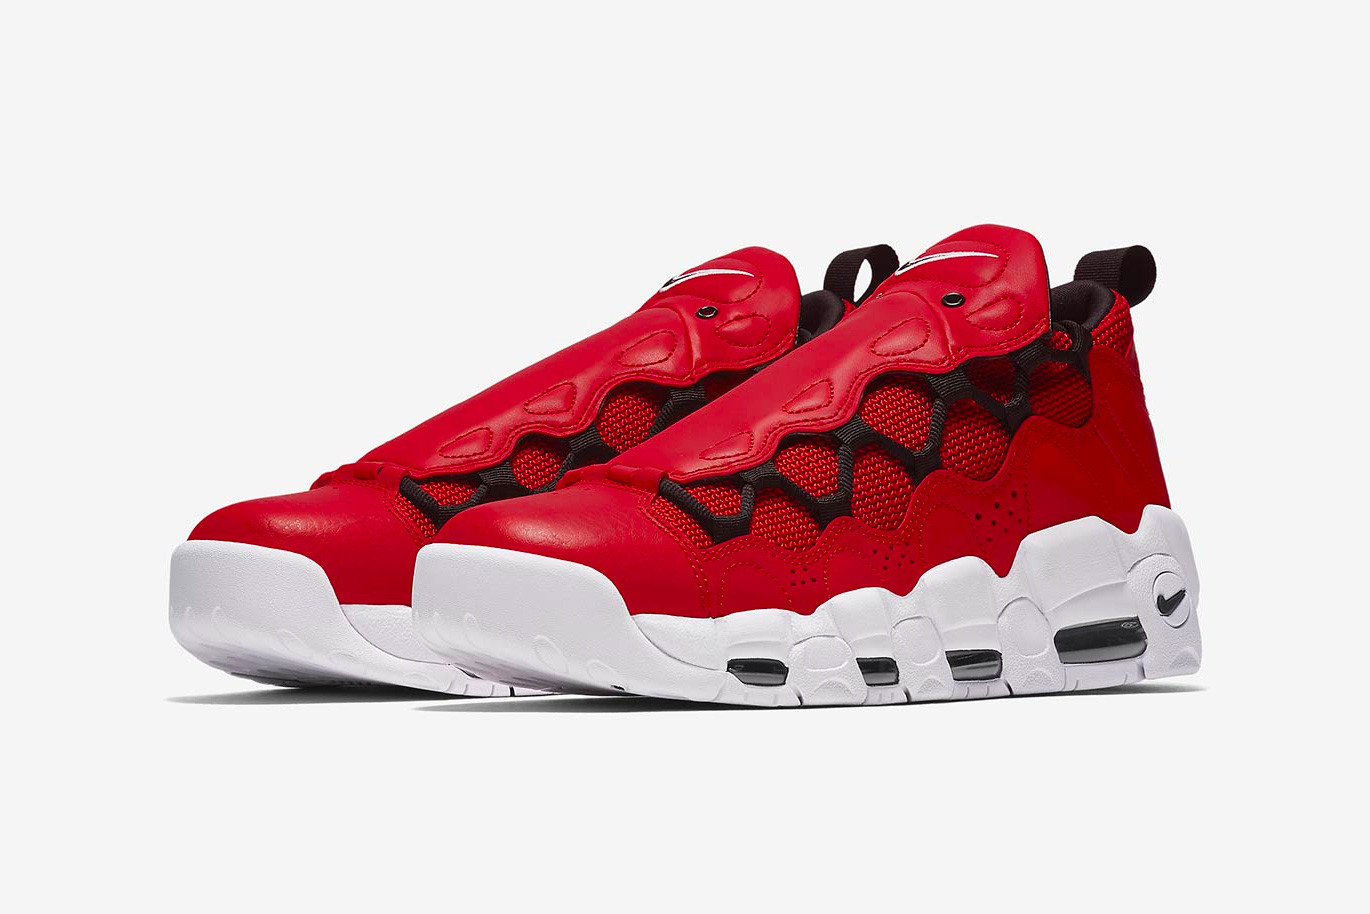 nike-air-more-money-navy-red-release-9